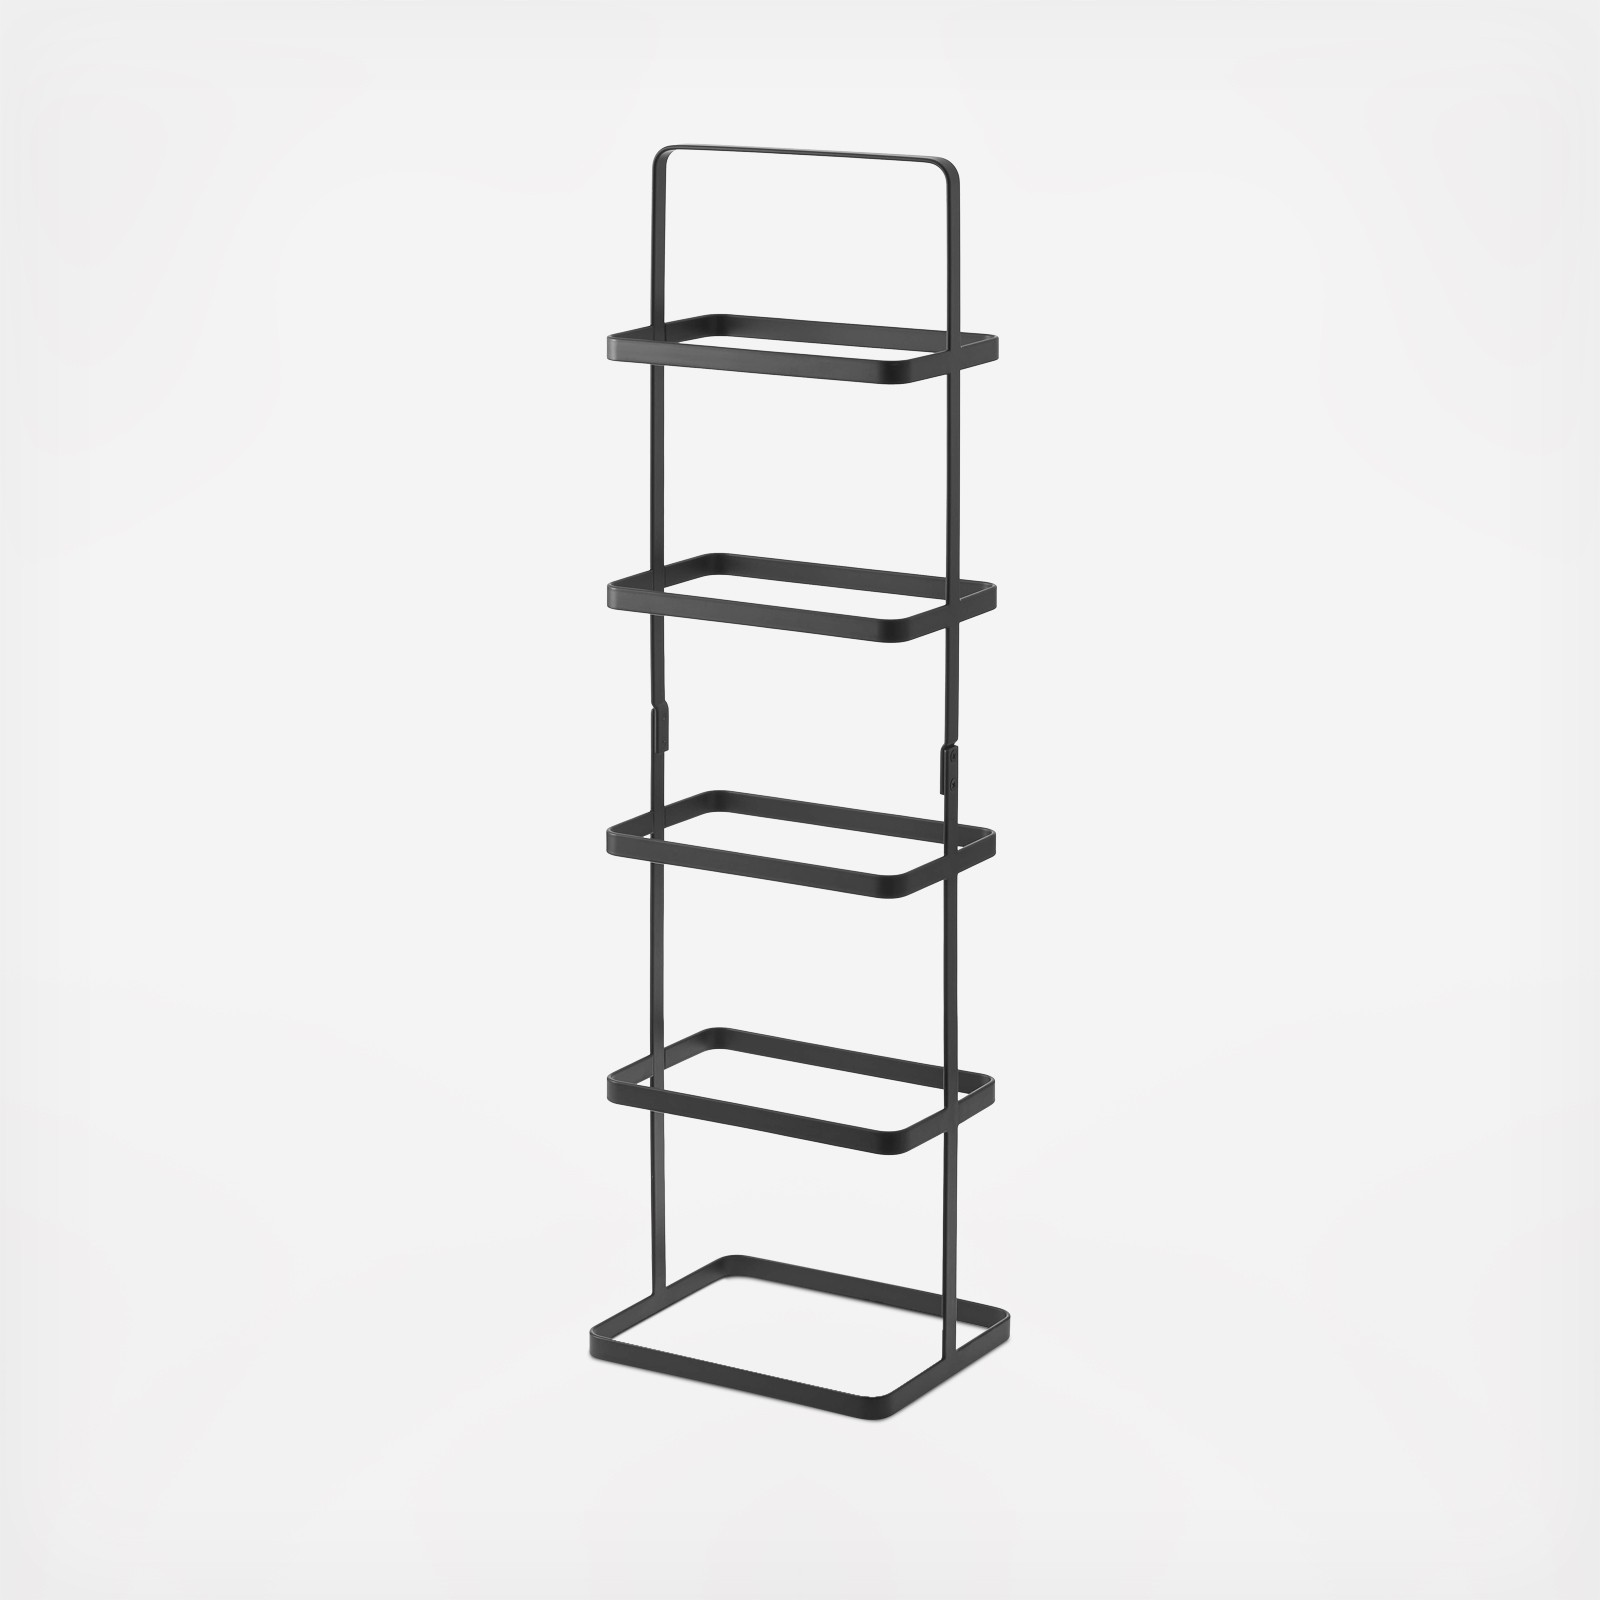 Uncategorized Tower Shoe Rack tower shoe rack zola